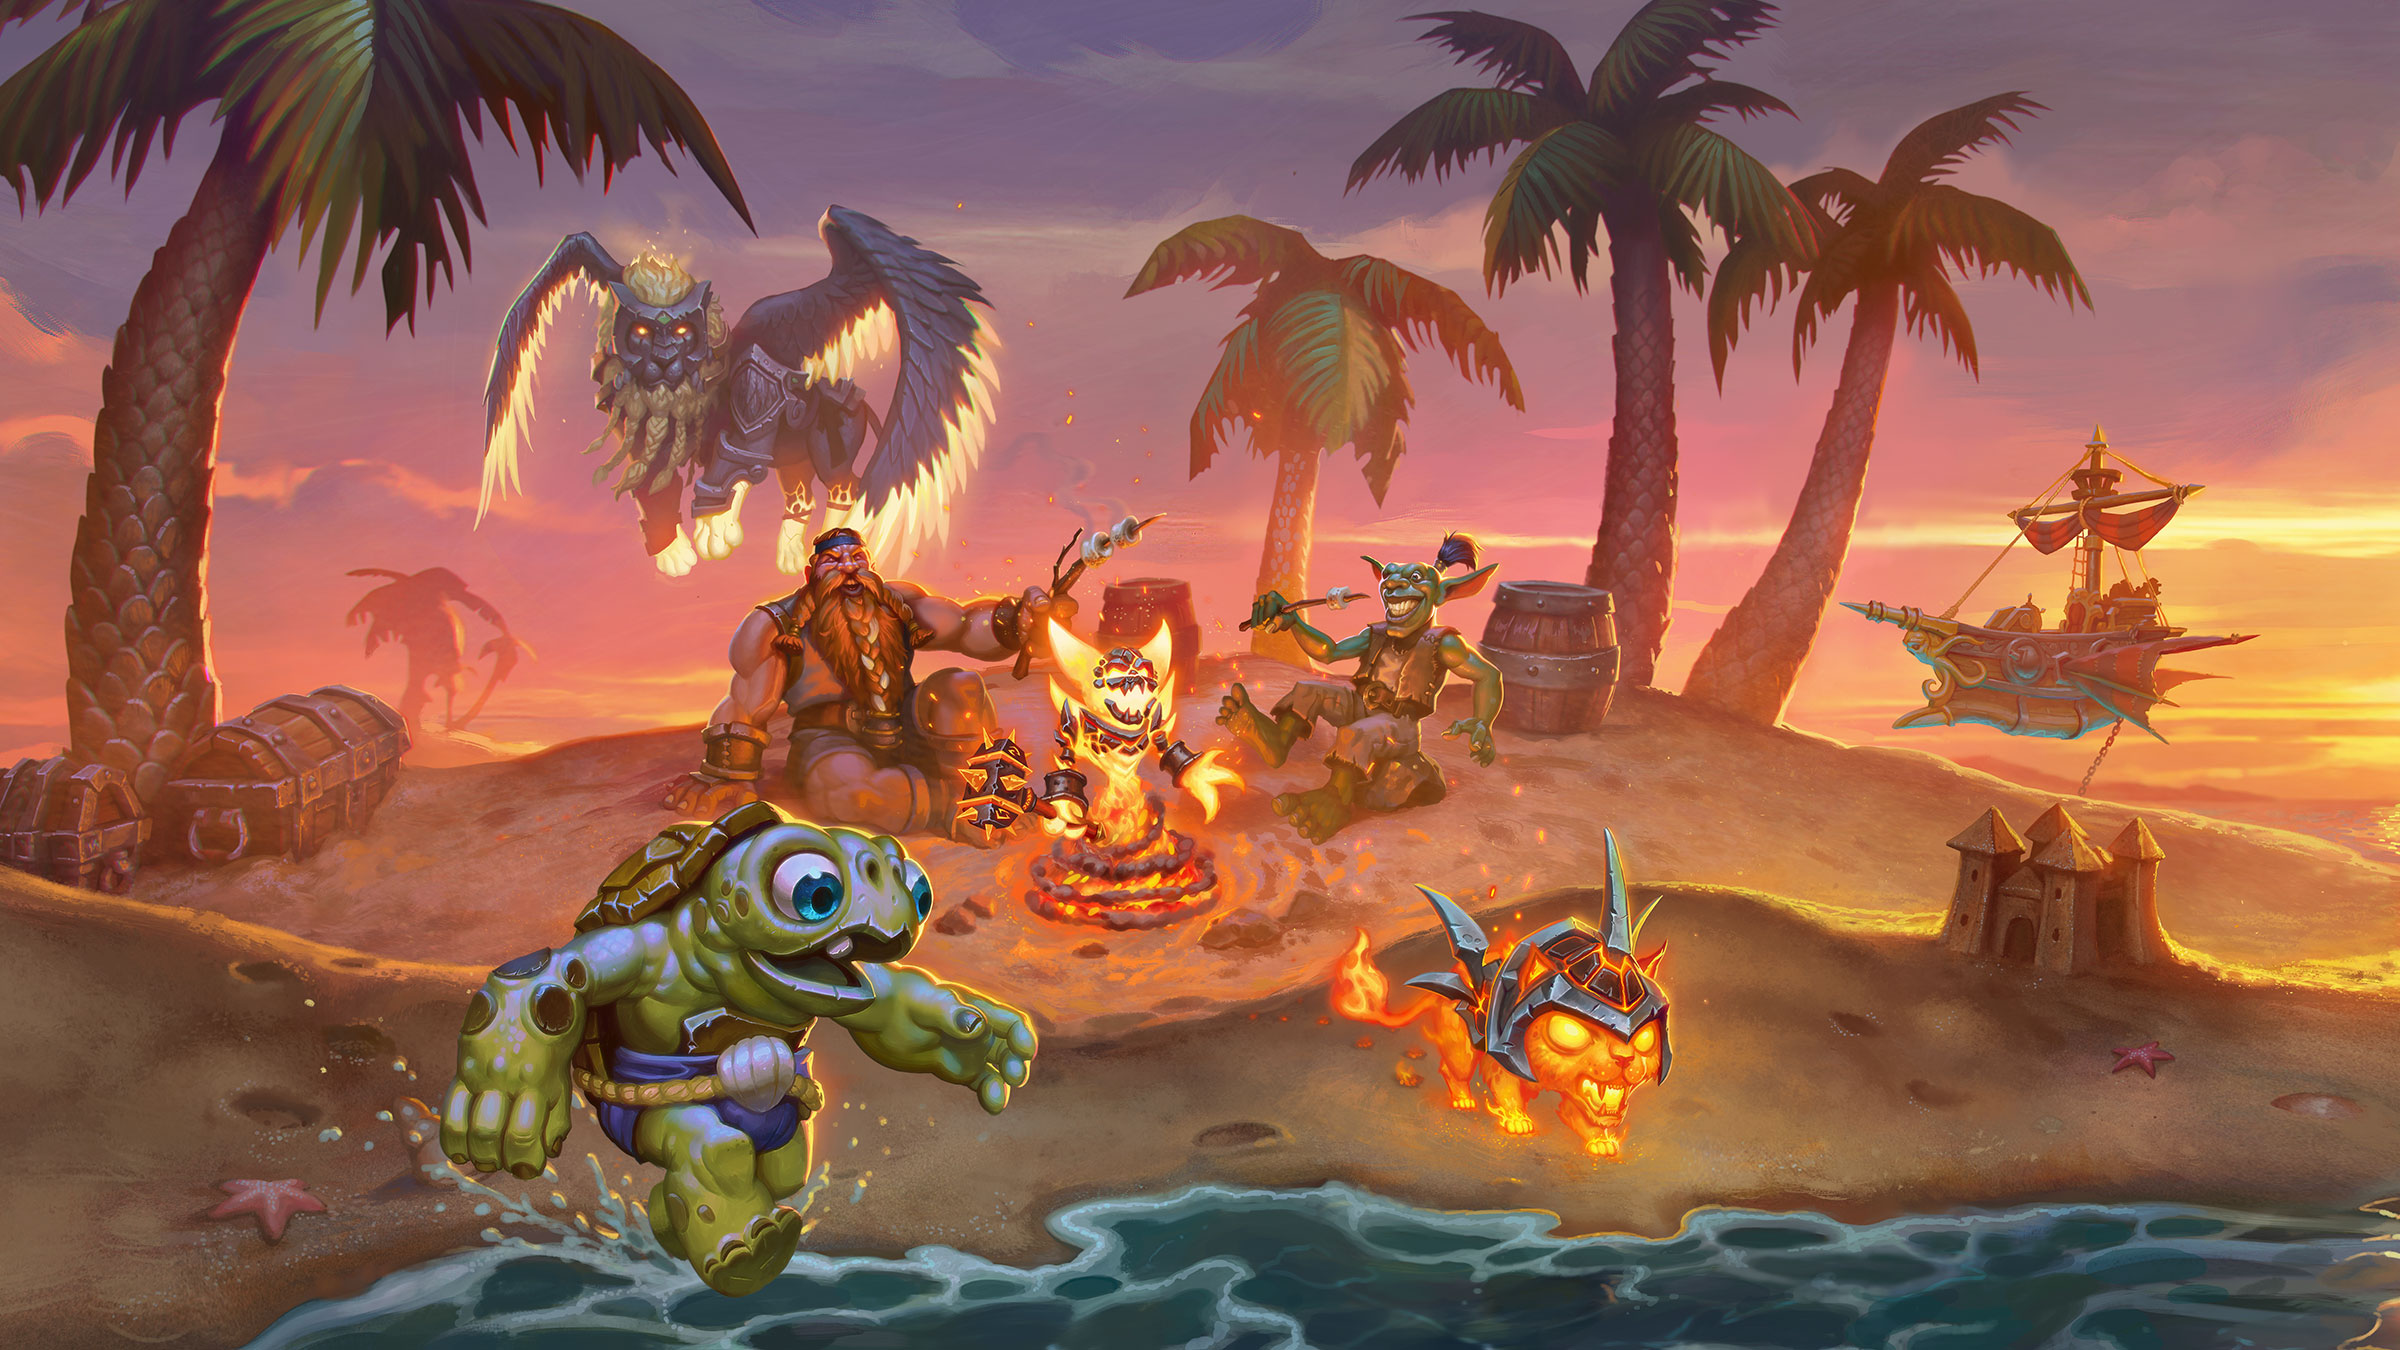 Summer Sale is here! Save Big on Mounts, Pets, Game Services, and More.